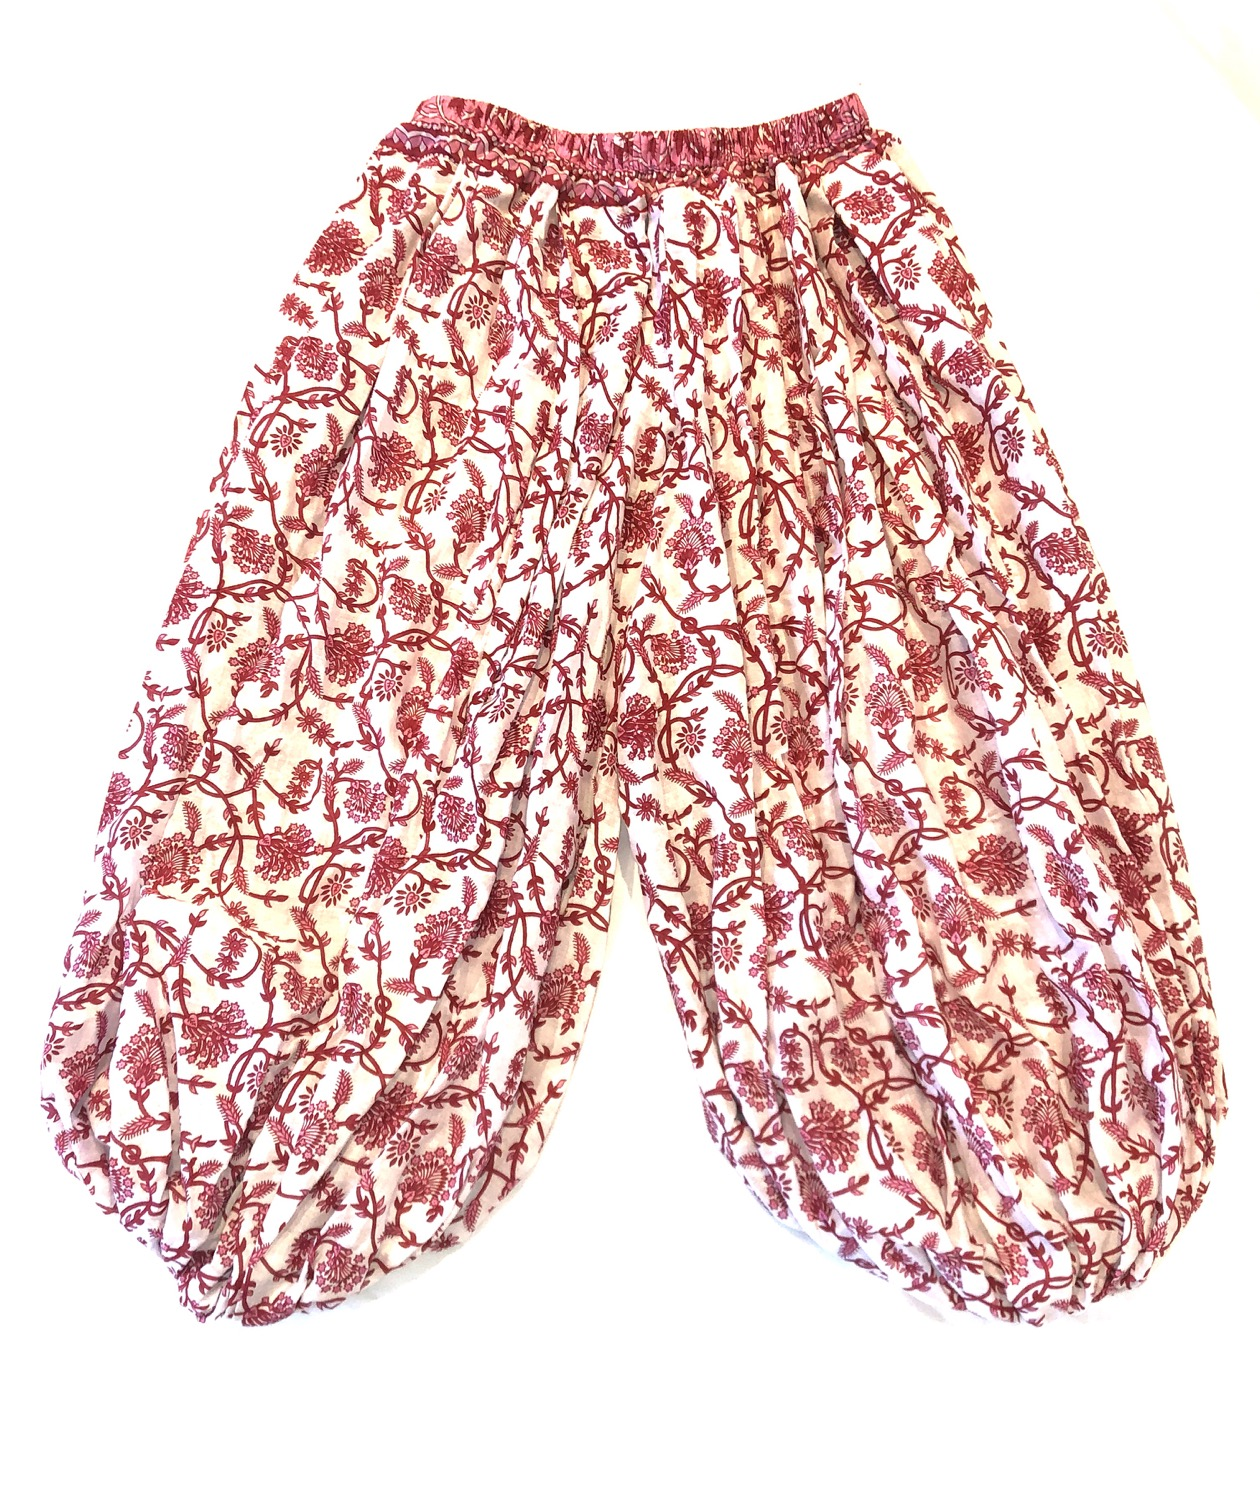 "Cotton Pantaloons - 39"" - Red/Pink/White - CPT208"